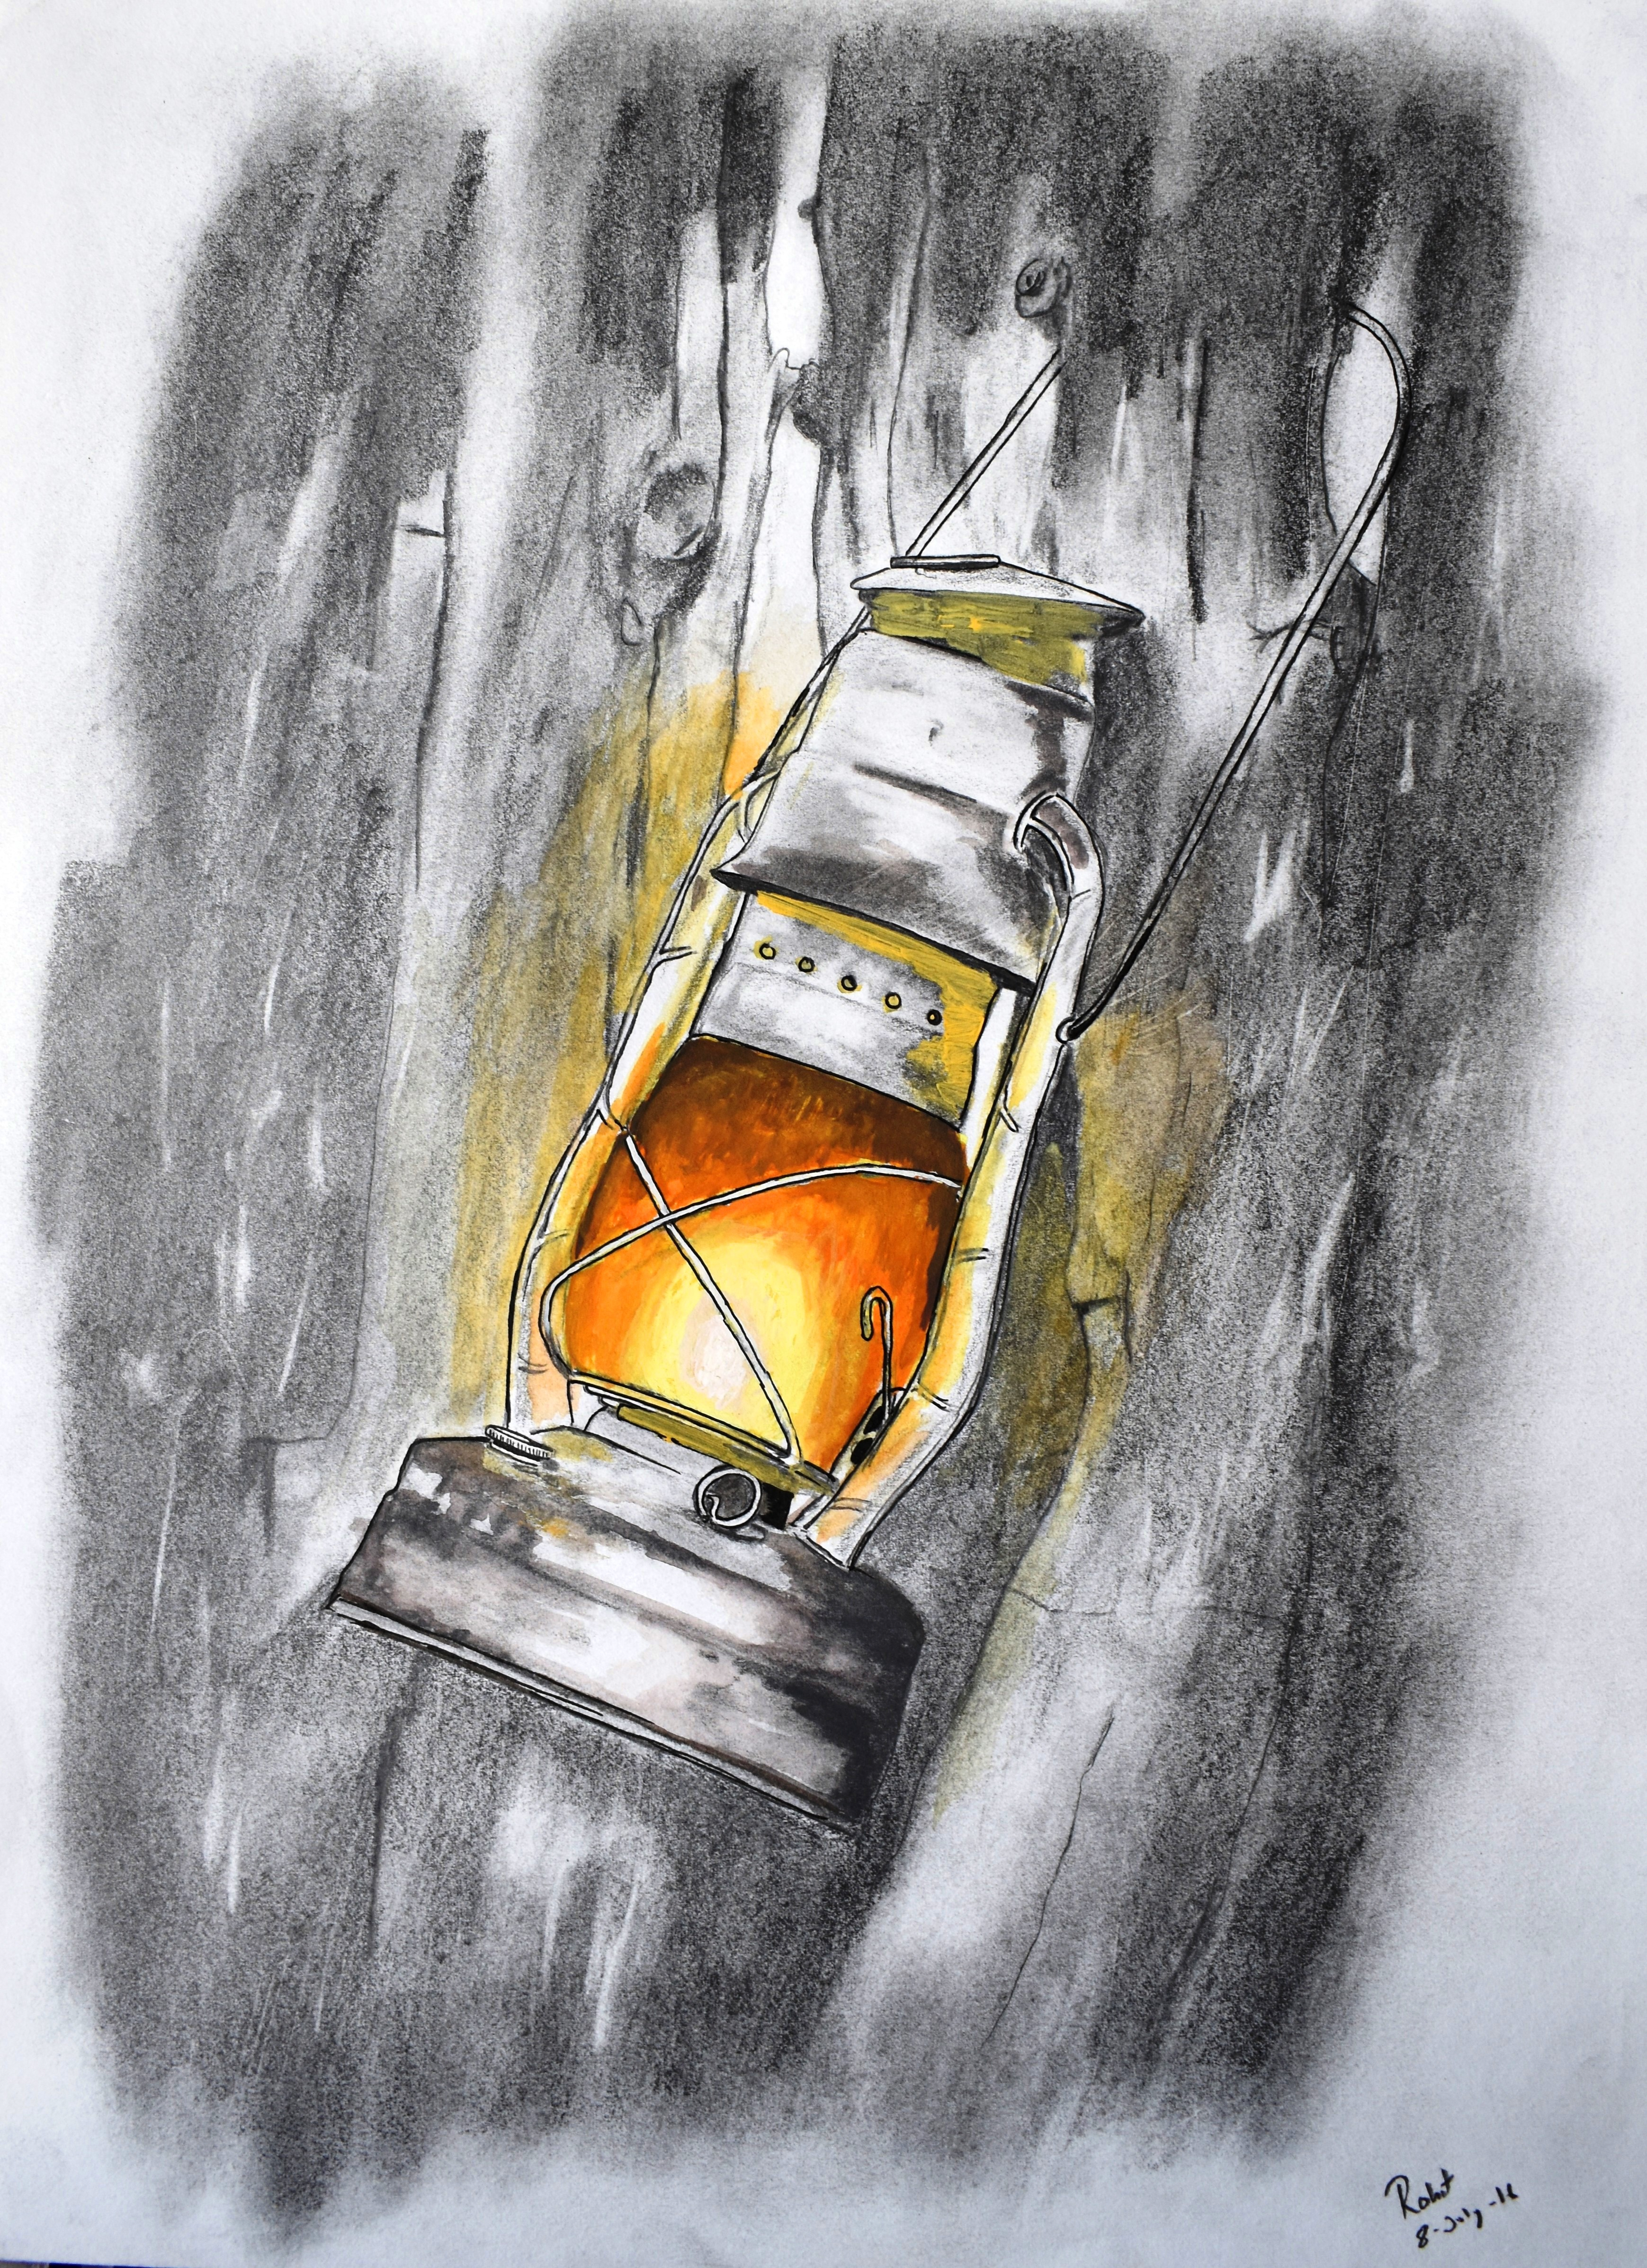 Lamp Light,  200 GSM PAPER, 12″ x 18″  CHARCOAL / WATERCOLOUR.